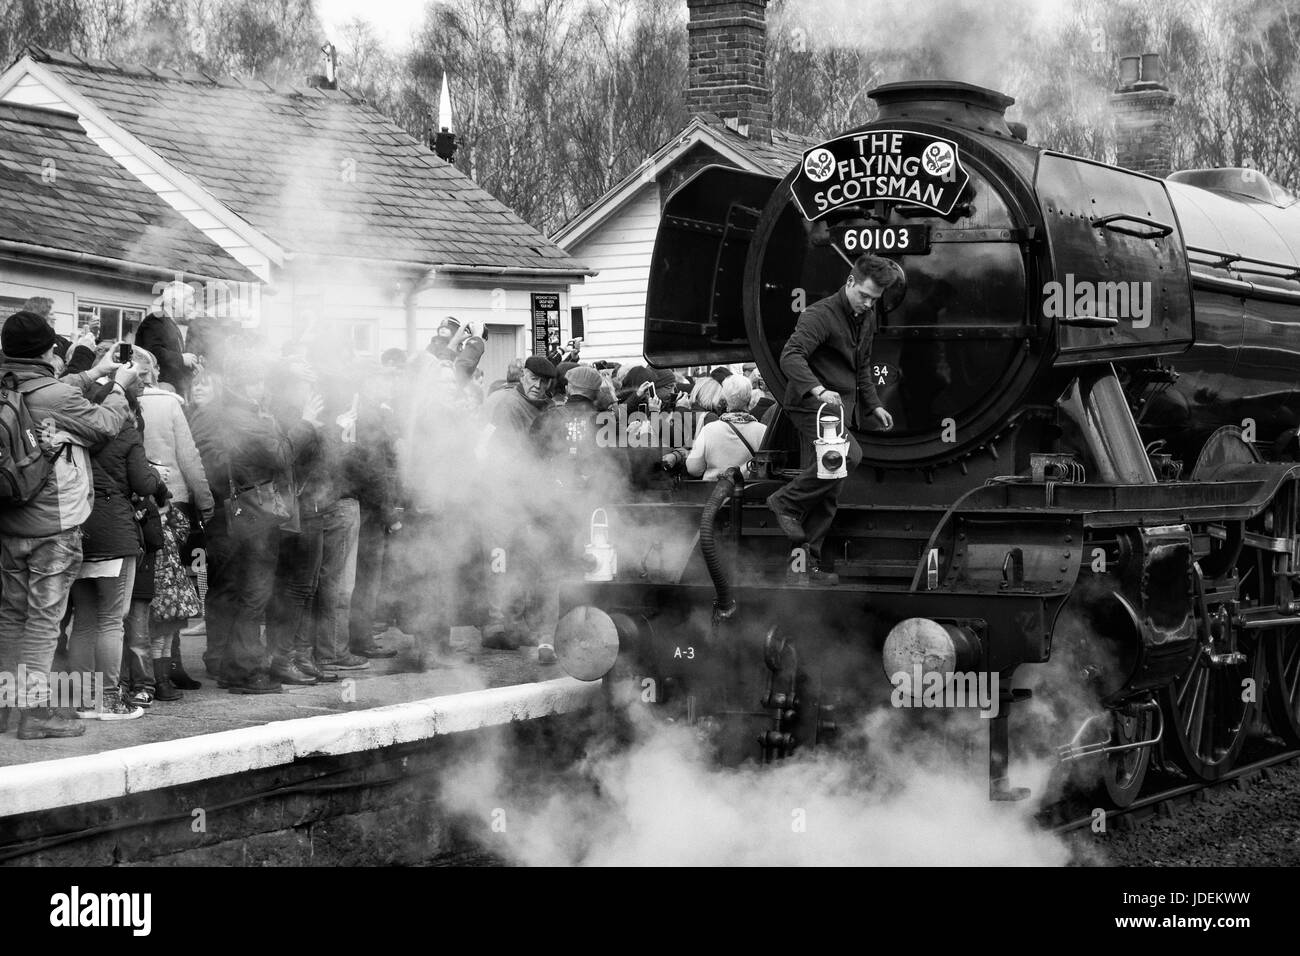 The Flying Scotsman train at Grosmont station in North Yorkshire, England, UK - Stock Image